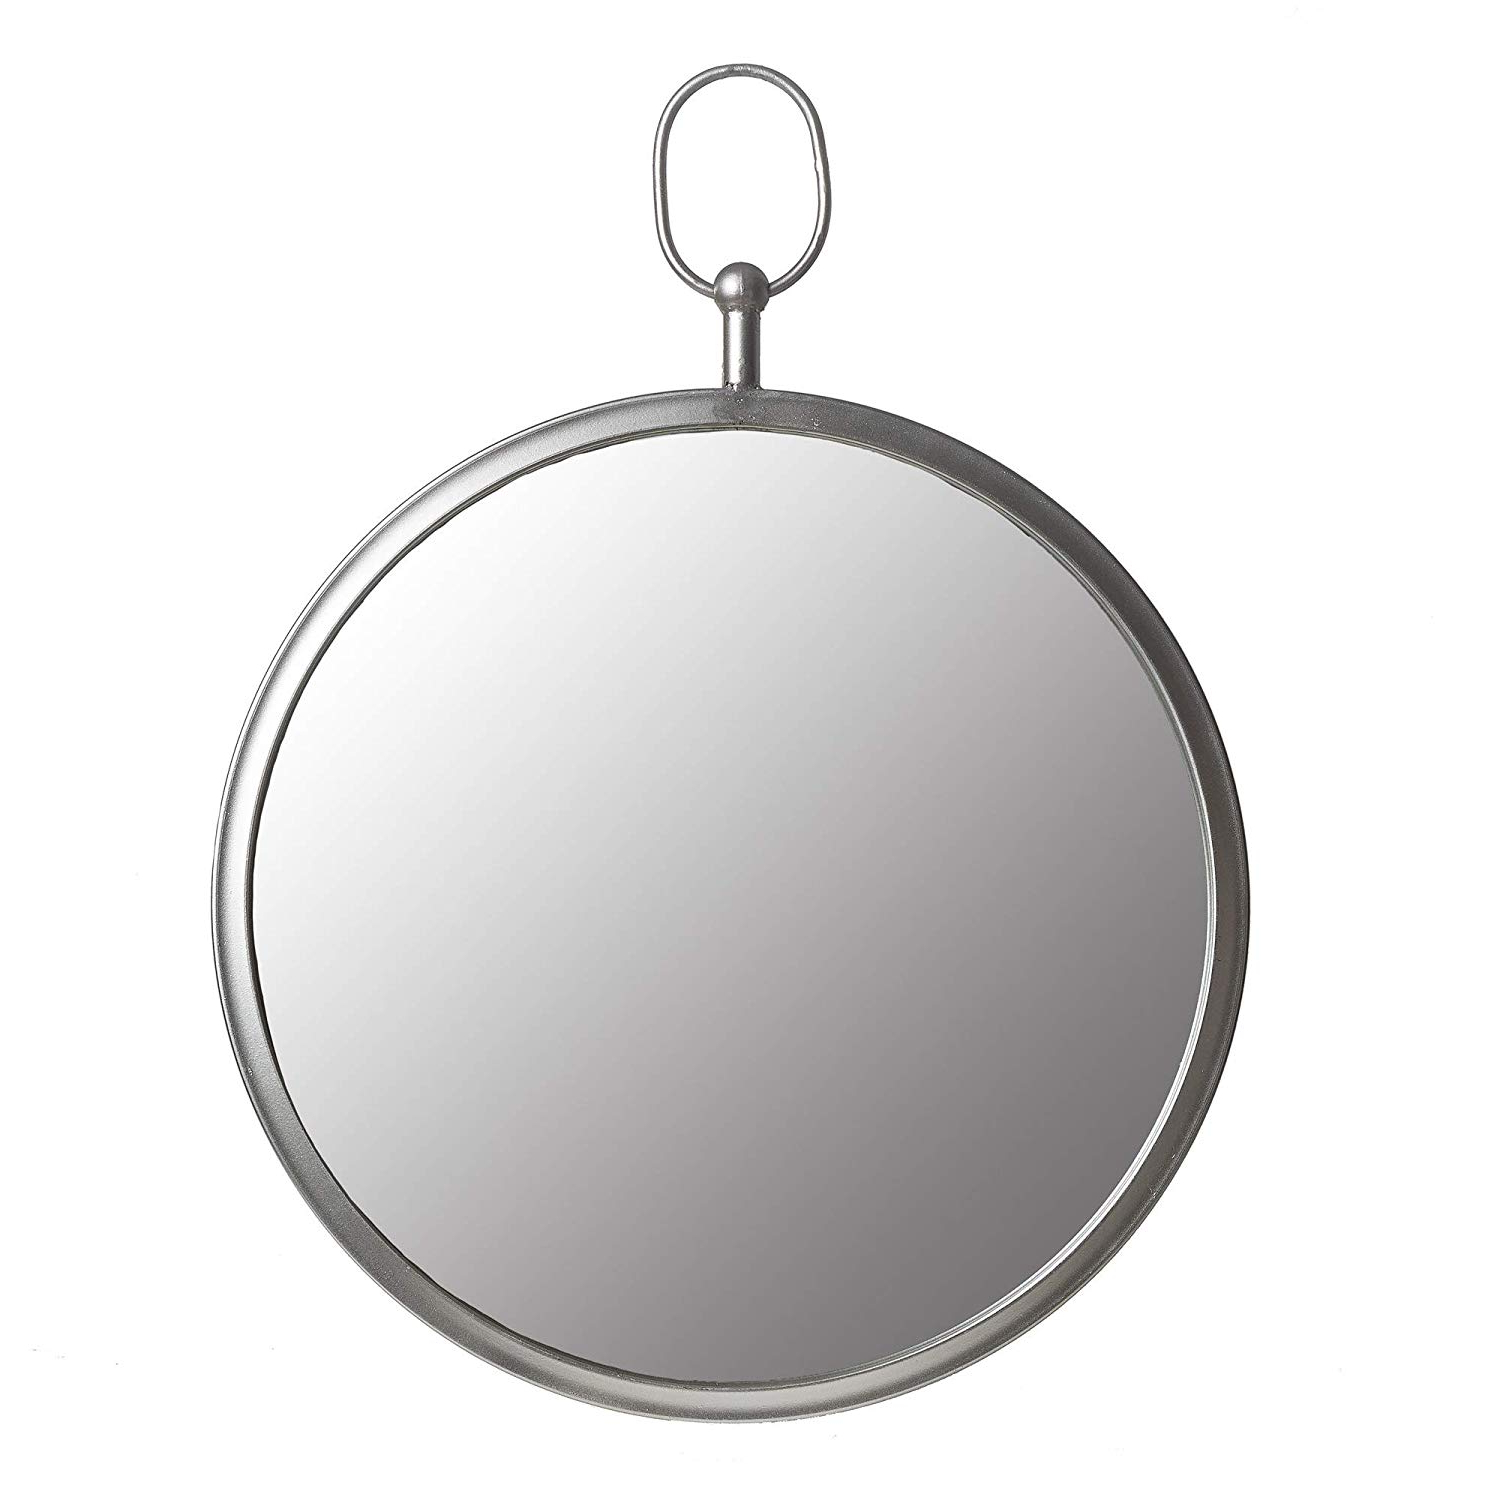 Silver Round Wall Mirrors With Regard To Most Recent Amazon: Silver Round Wall Mirror With Decorative Handle: Home (View 13 of 20)